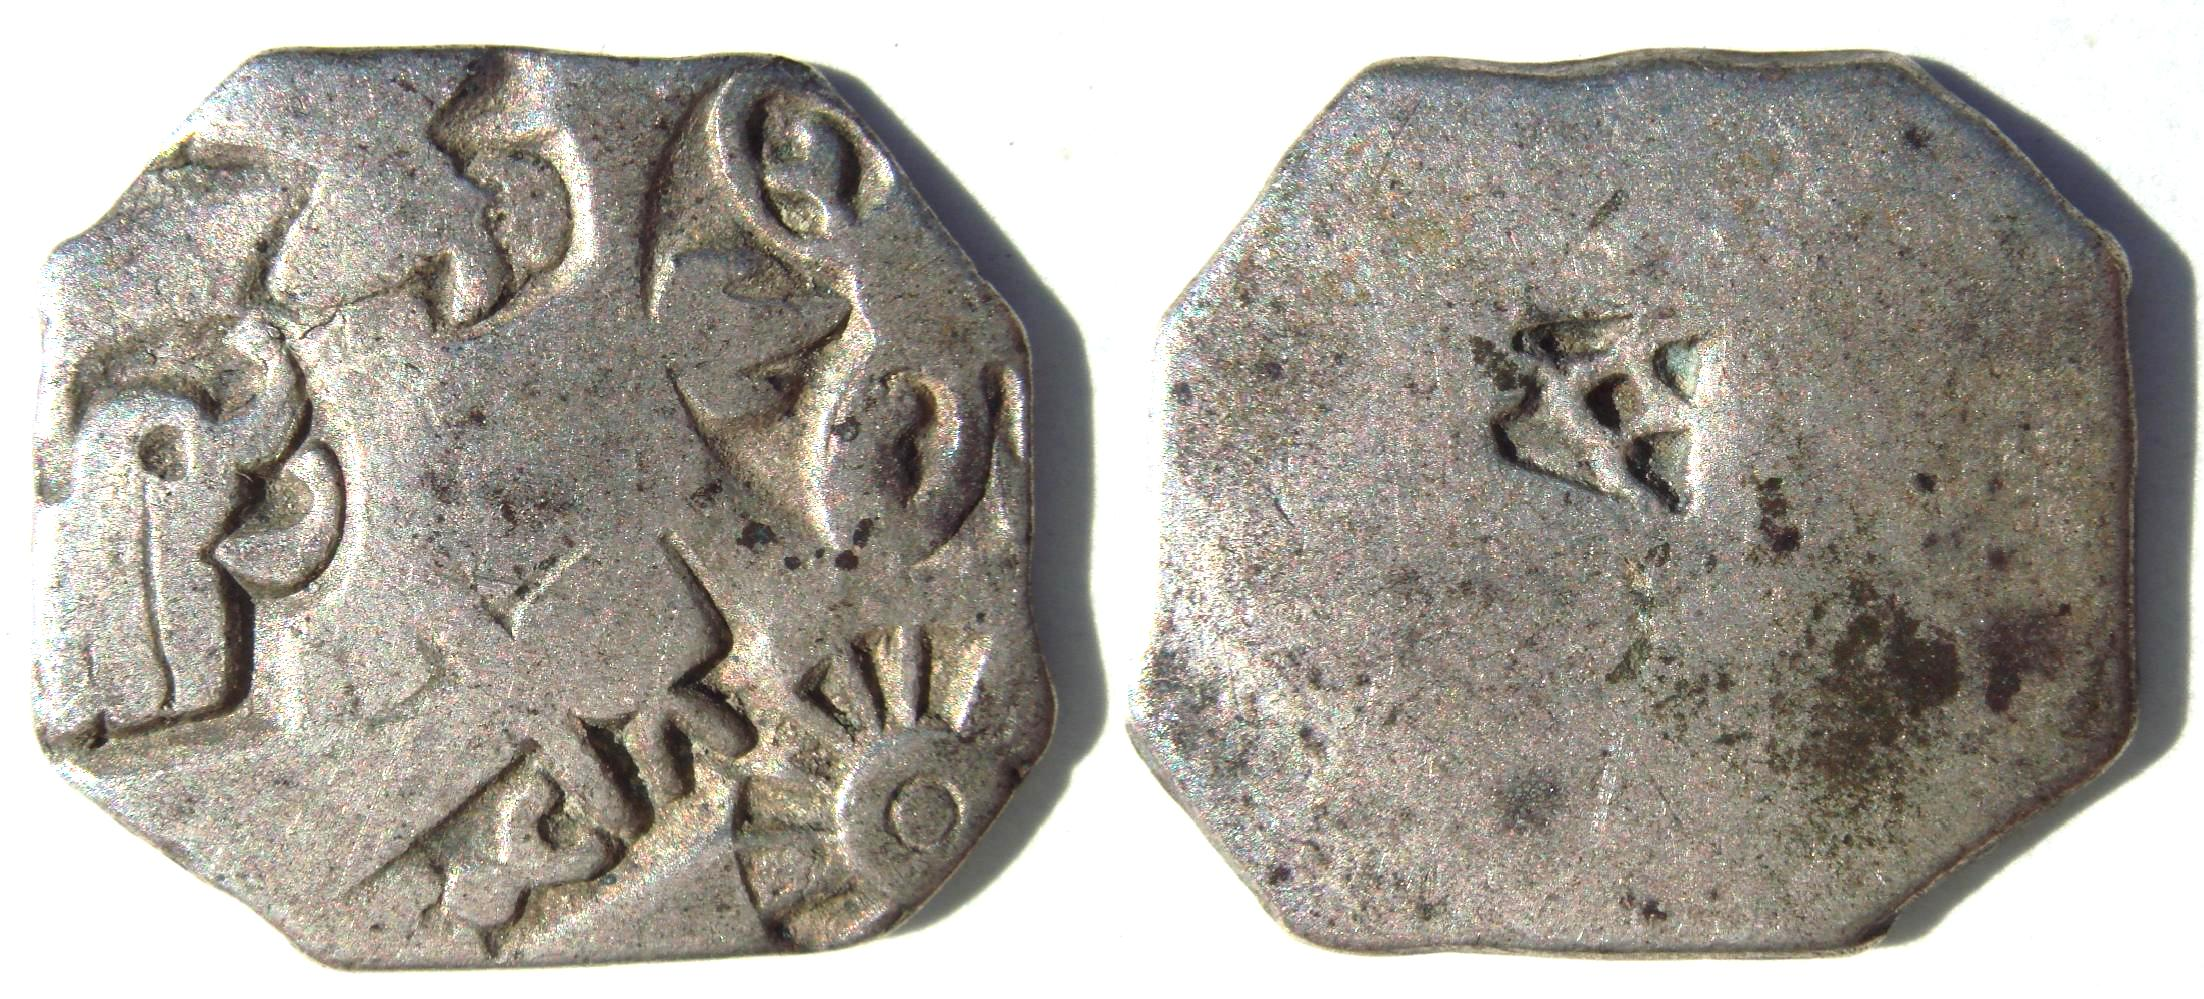 Silver punch mark coin of the Maurya empire, with symbols of wheel and elephant. 3rd century BCE.